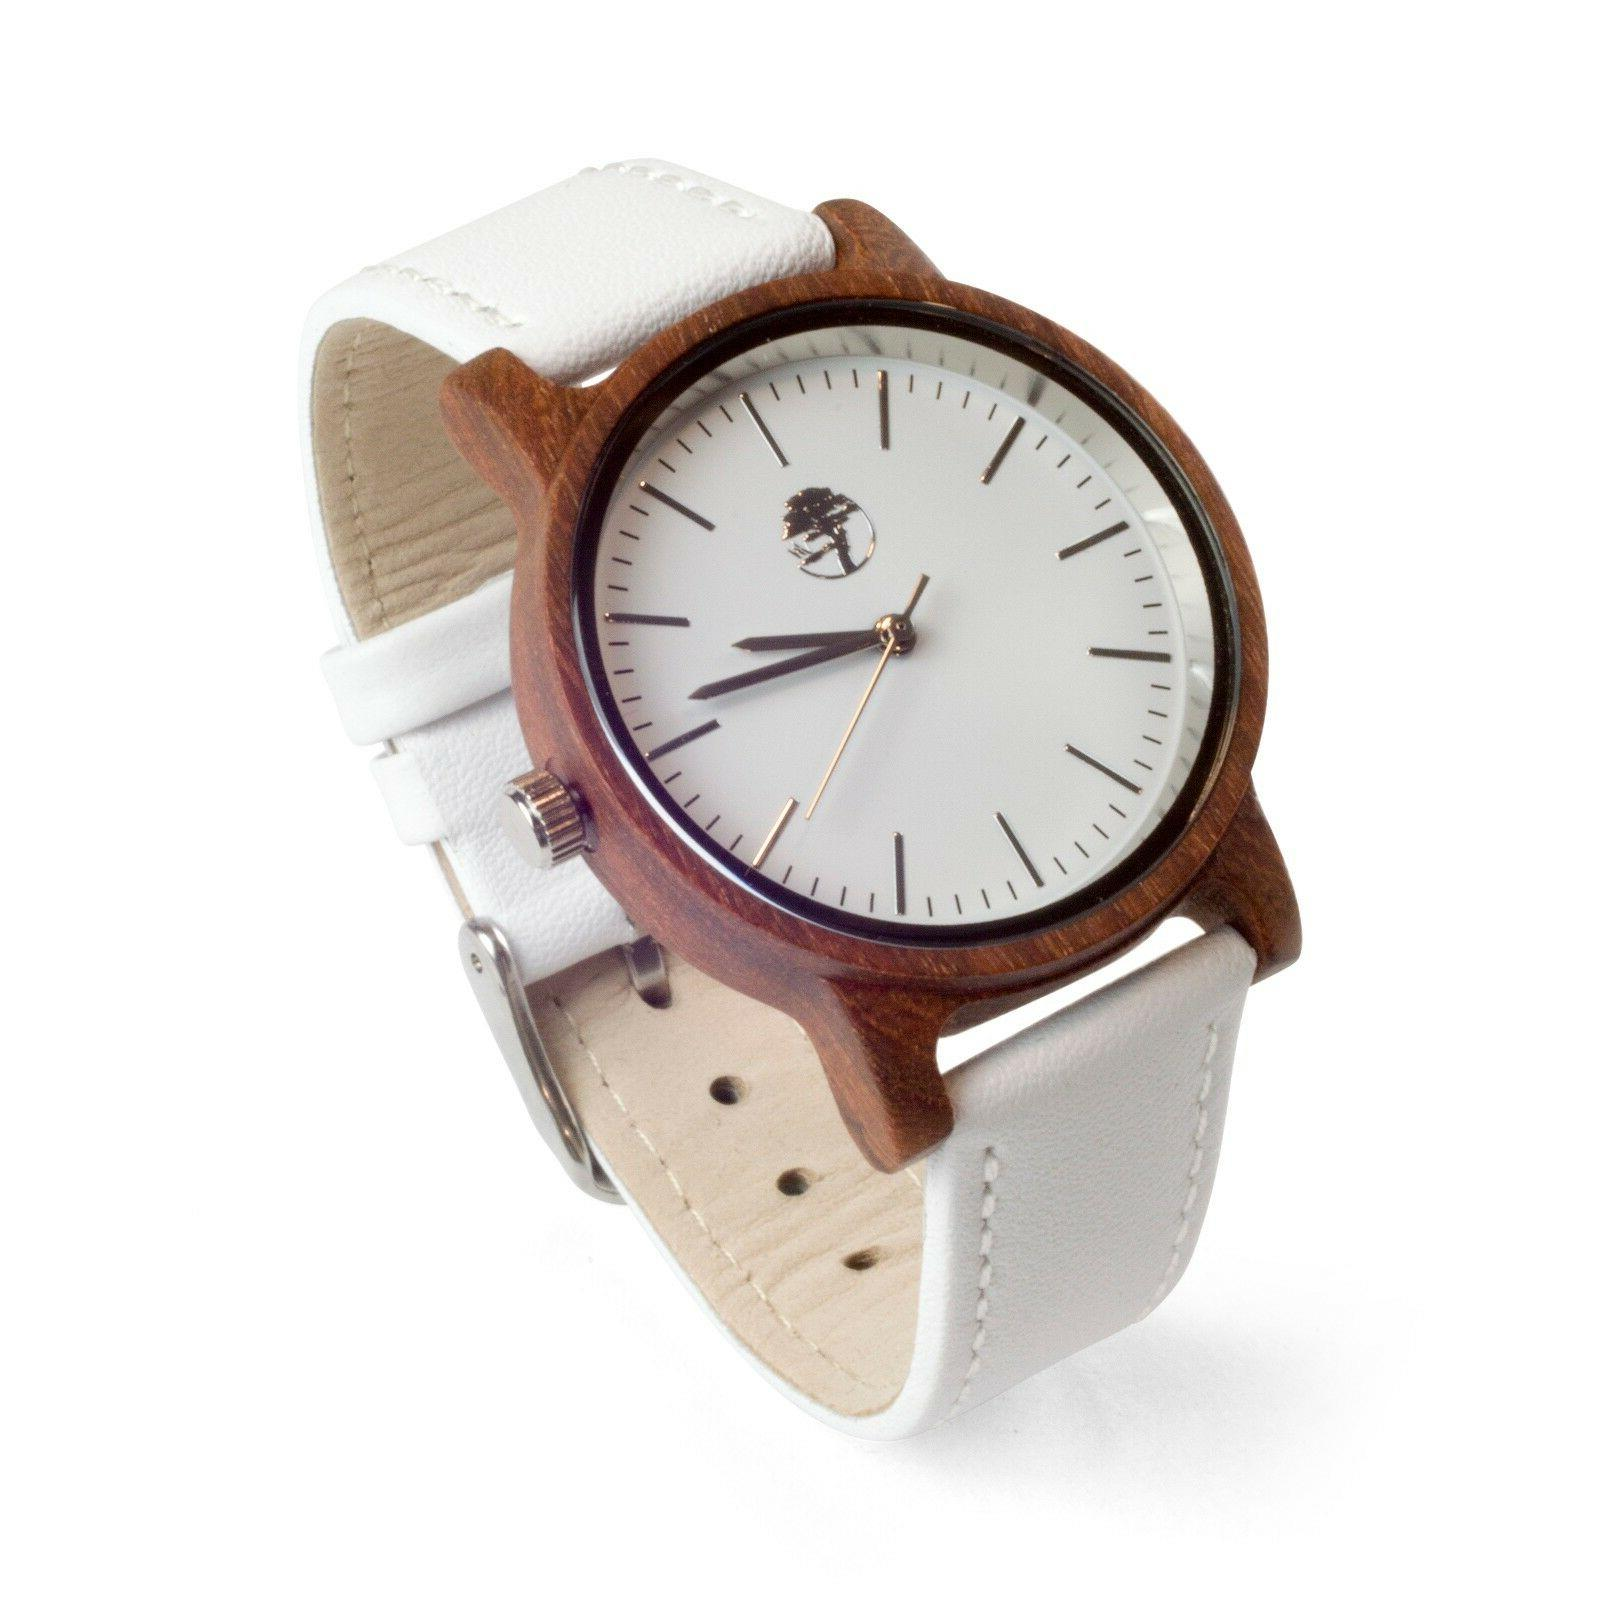 Clearance Wooden Wristwatch Wood Watch Genuine Leather White